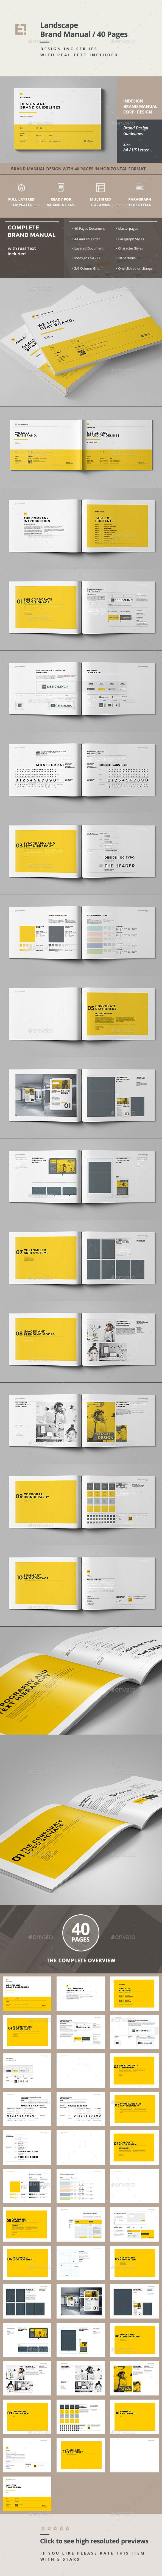 Brand Manual Template #design Download: http://graphicriver.net/item/brand-manual/11805697?ref=ksioks